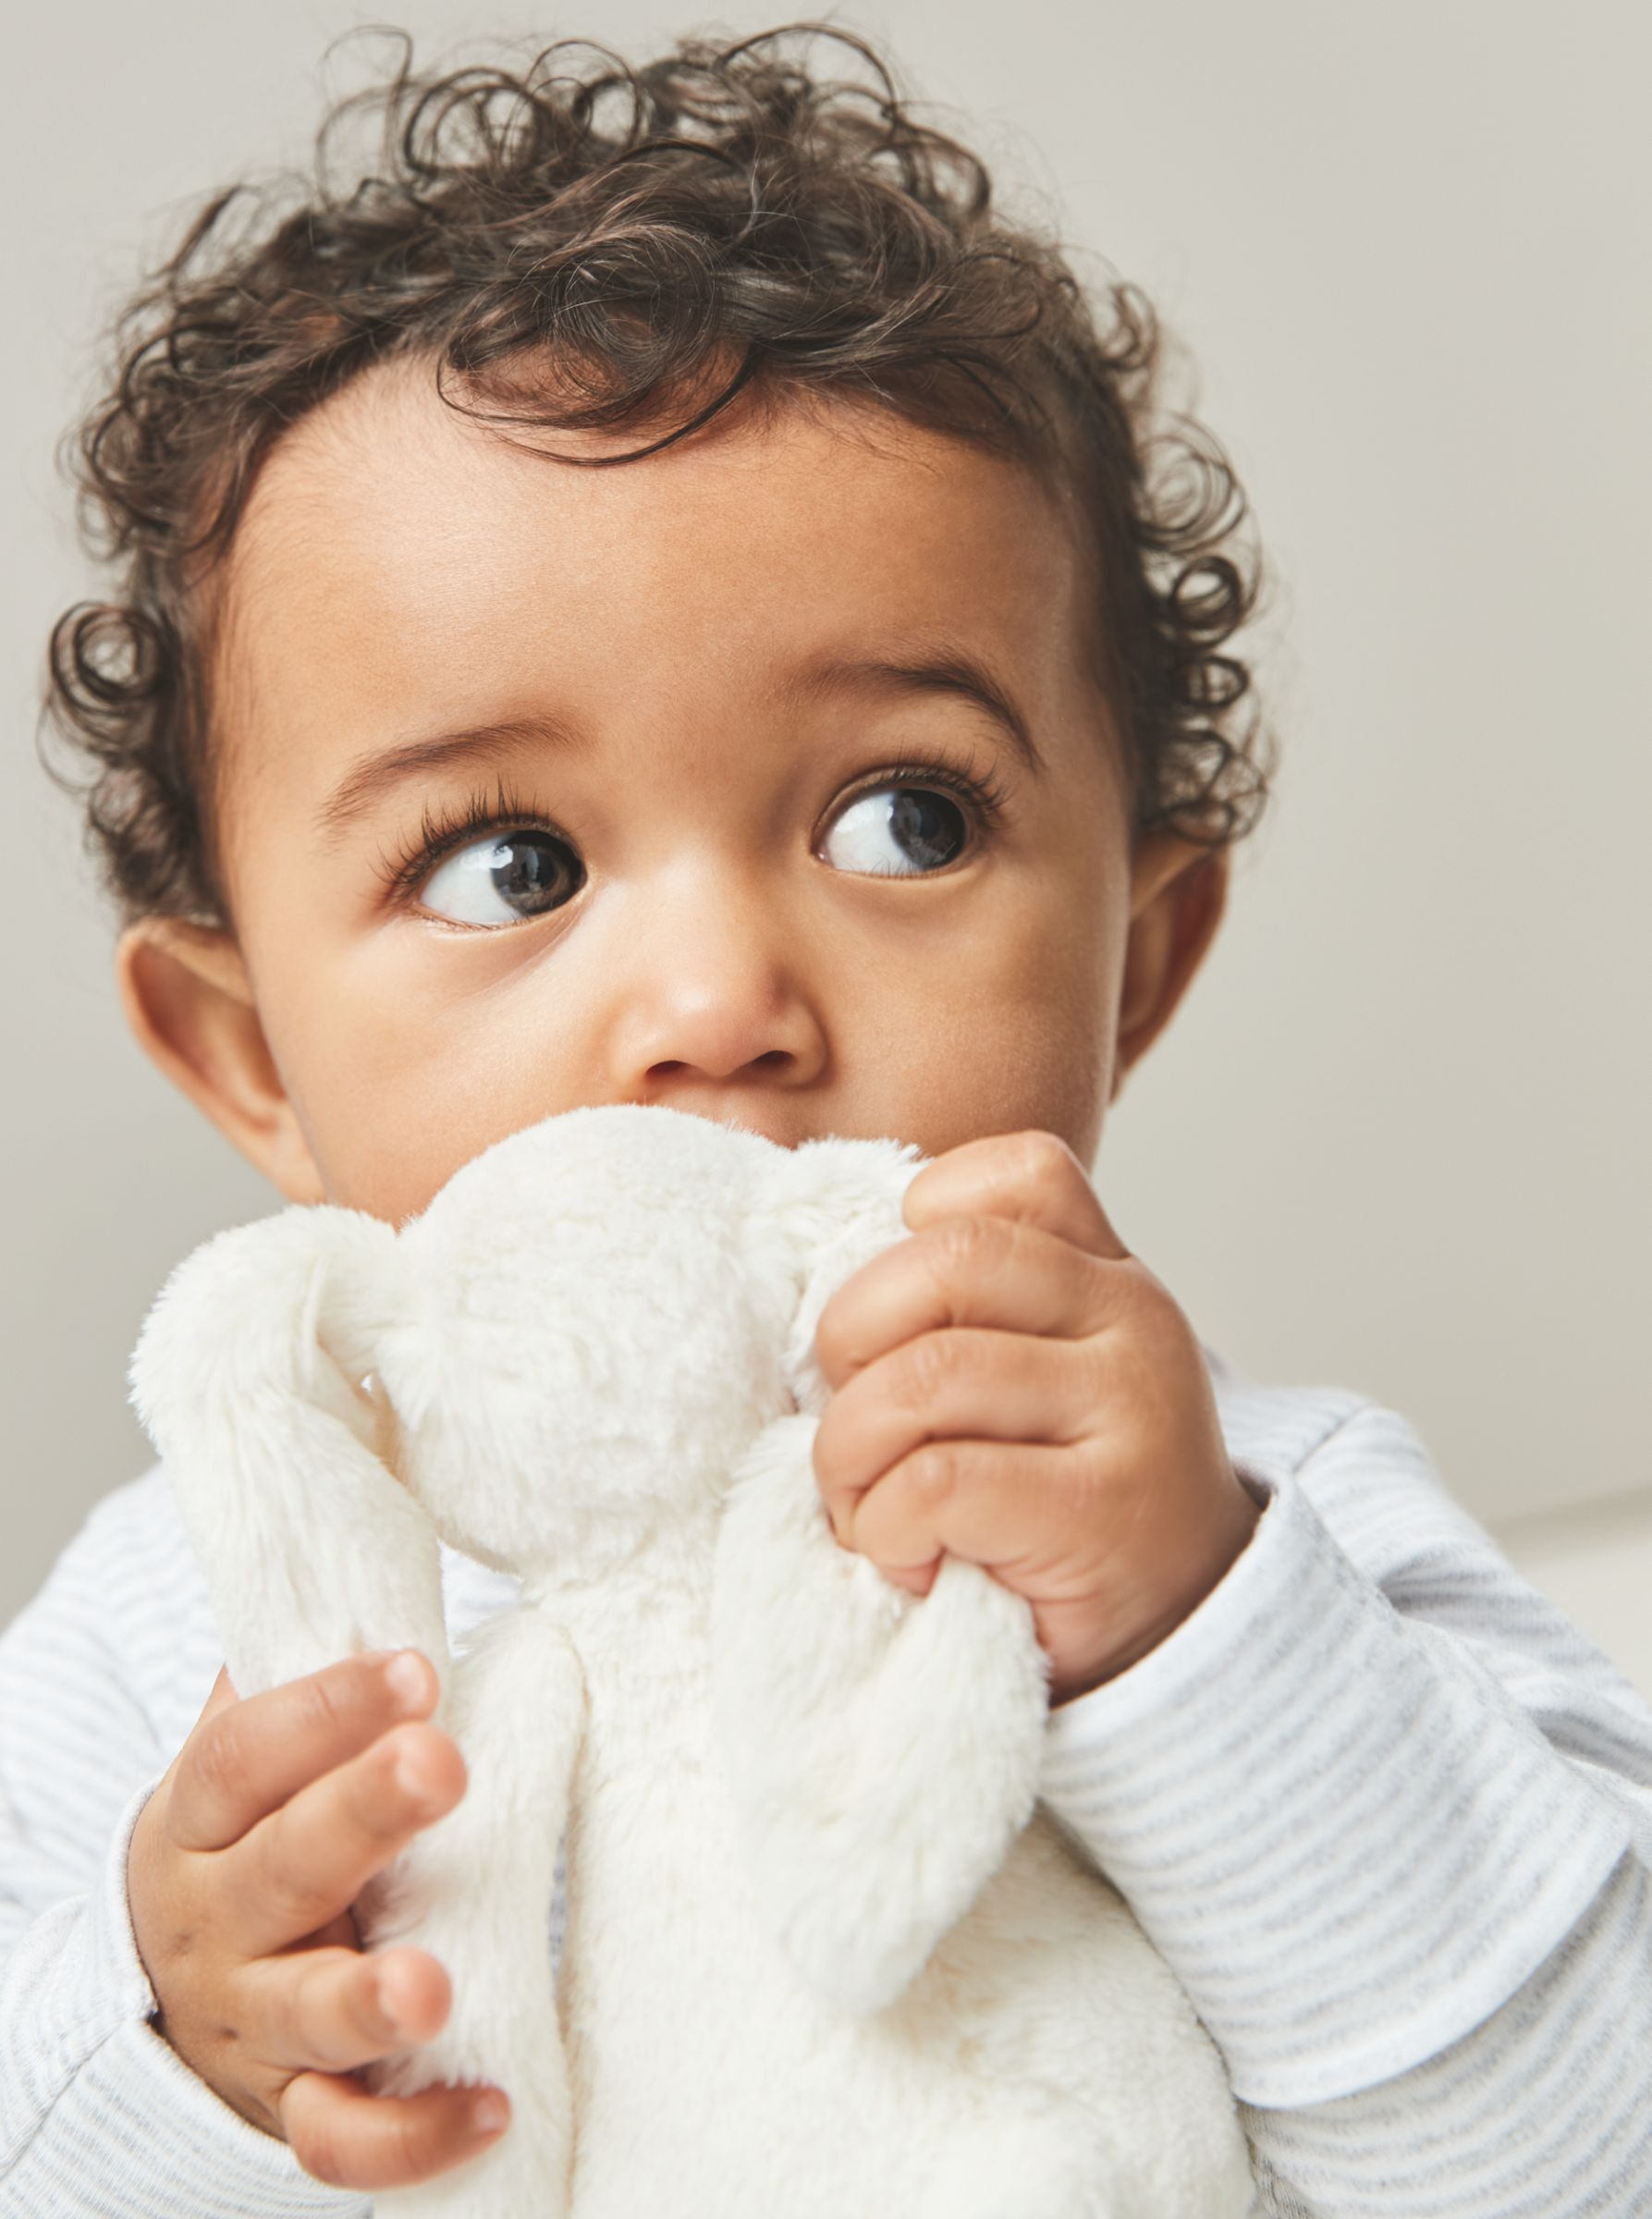 Baby holding a cuddly toy on a grey background